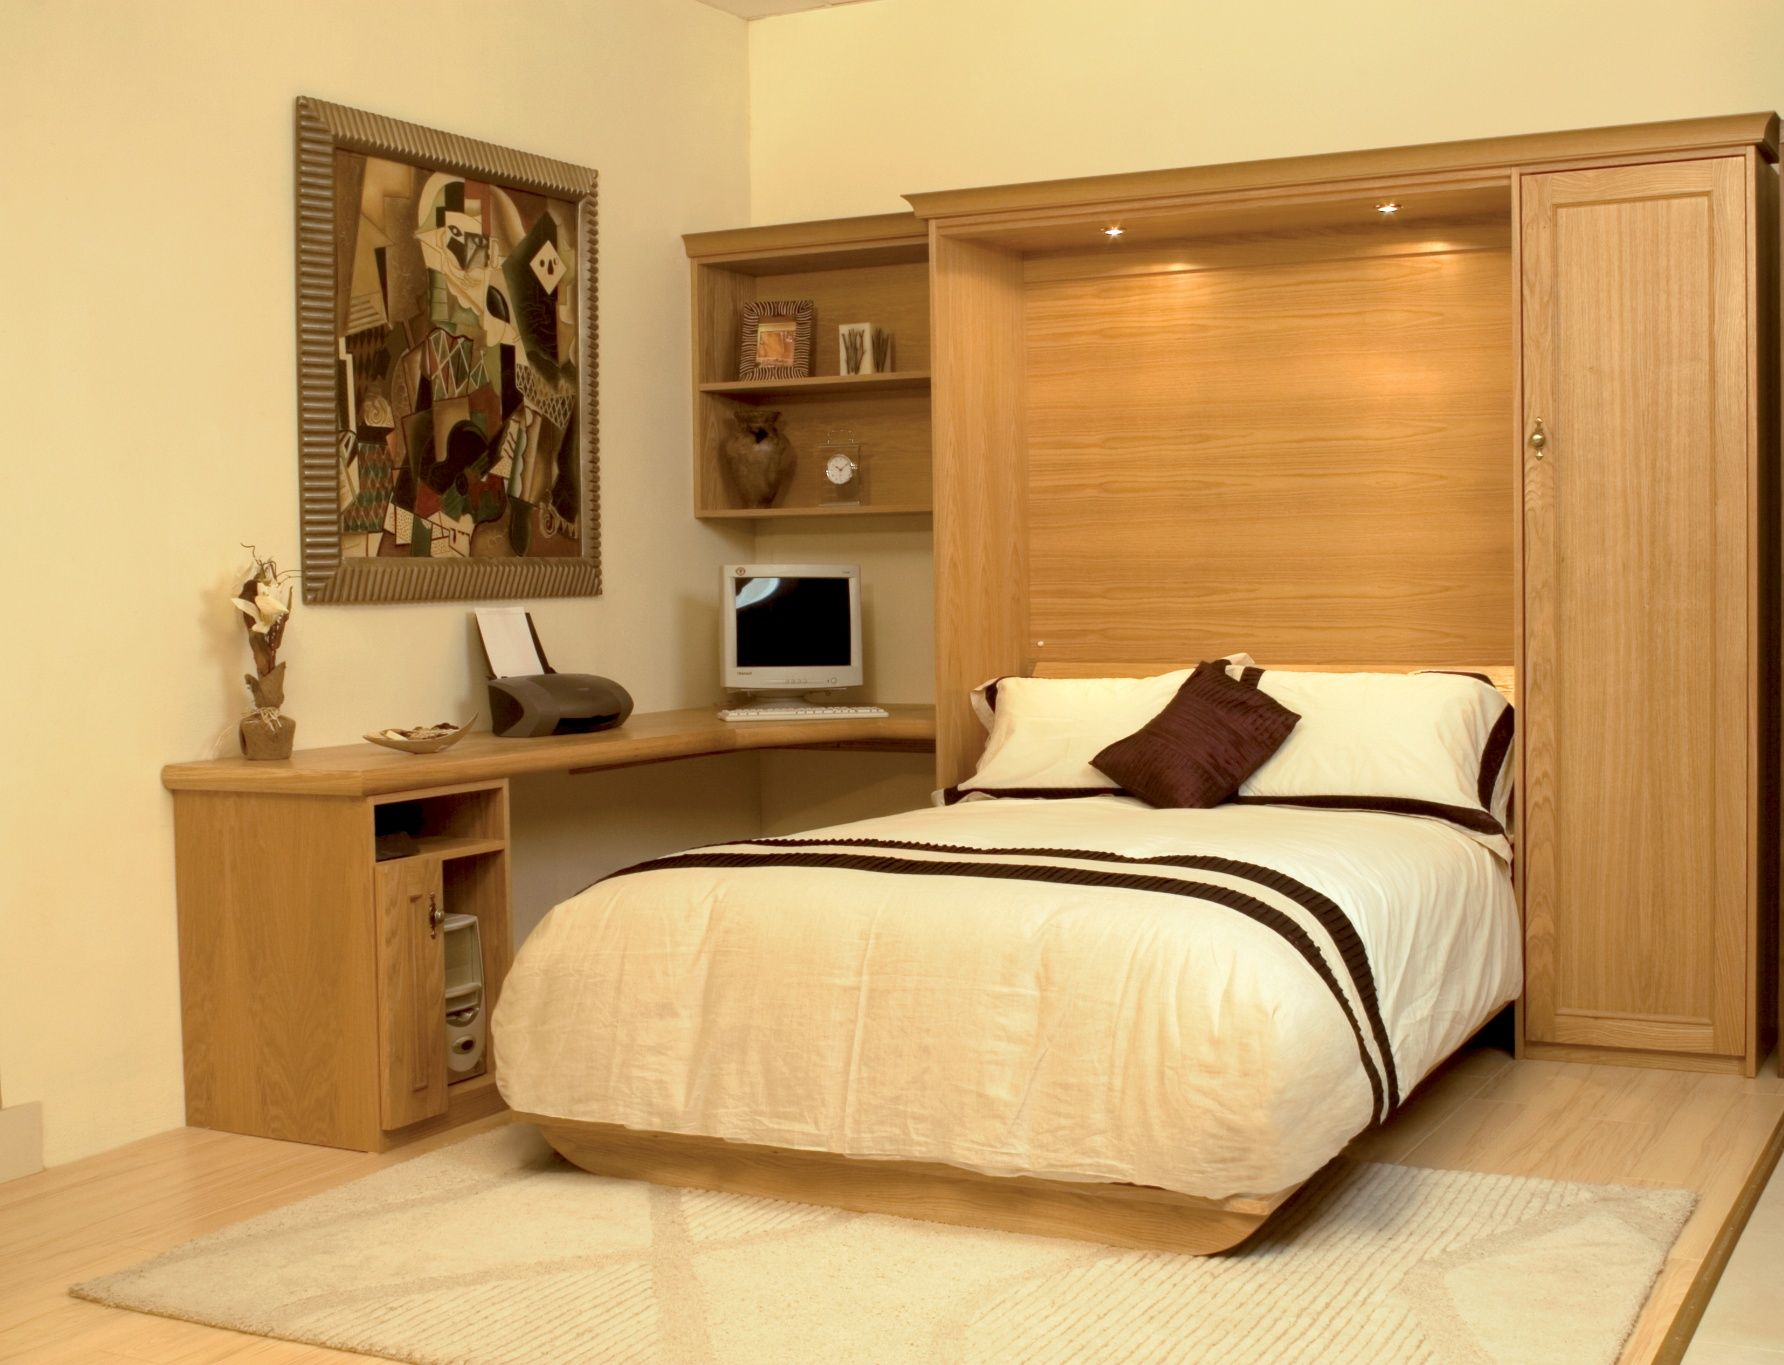 Oak wallbed with desk area and storage. Classy, space saving design ...